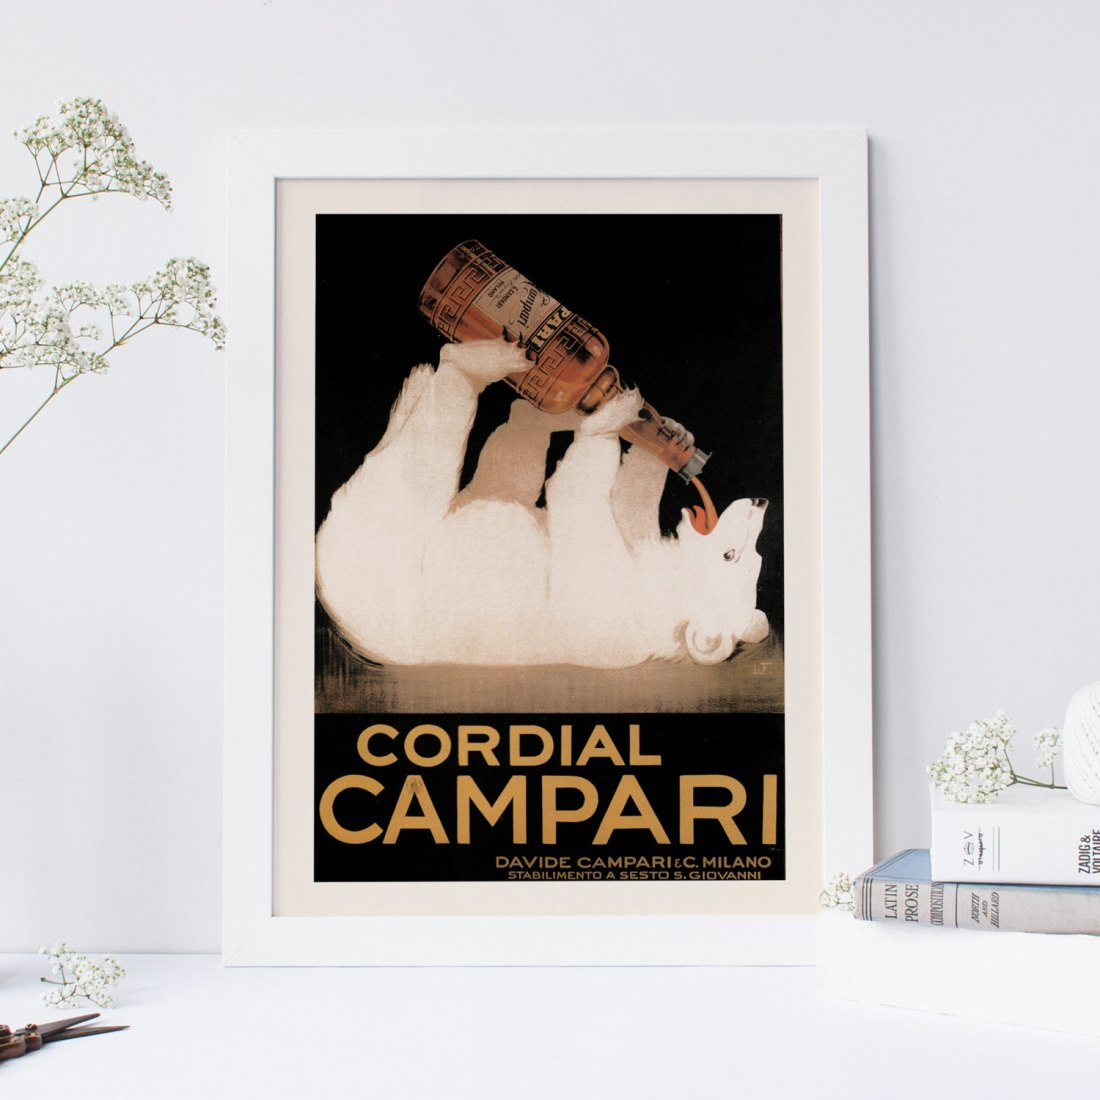 Poster for Cordial Campari. Undated.